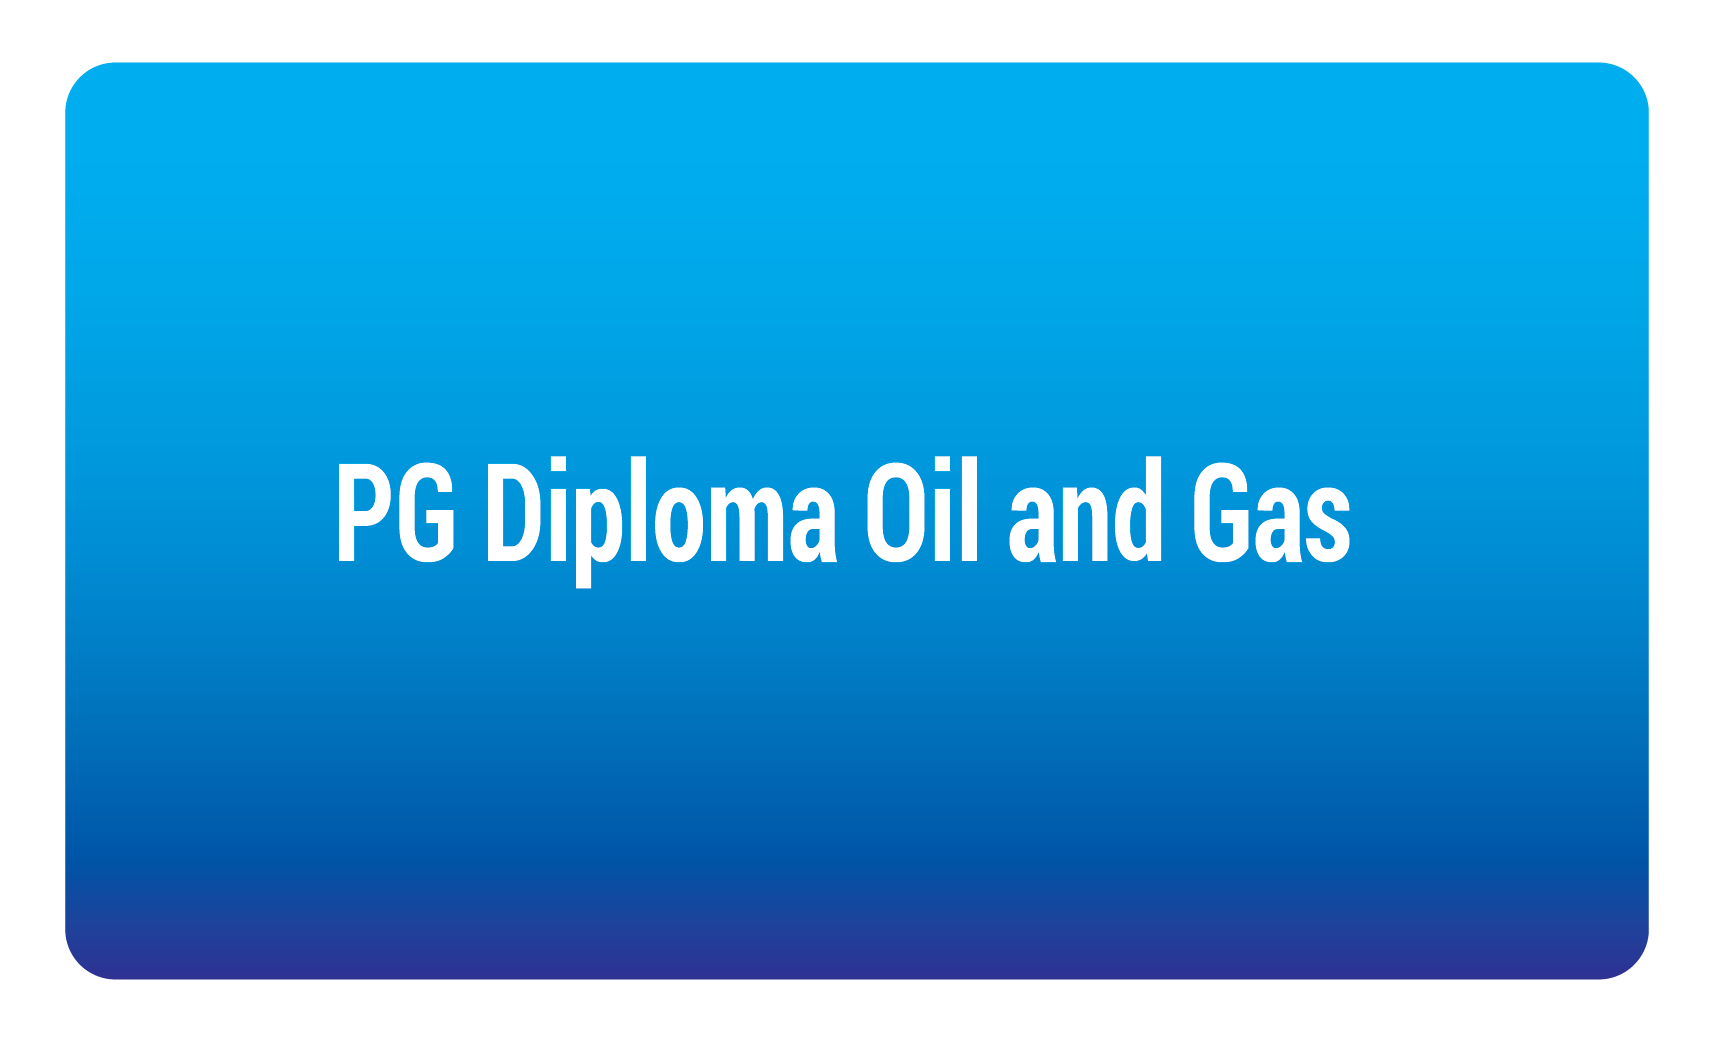 pg diploma oil and gas